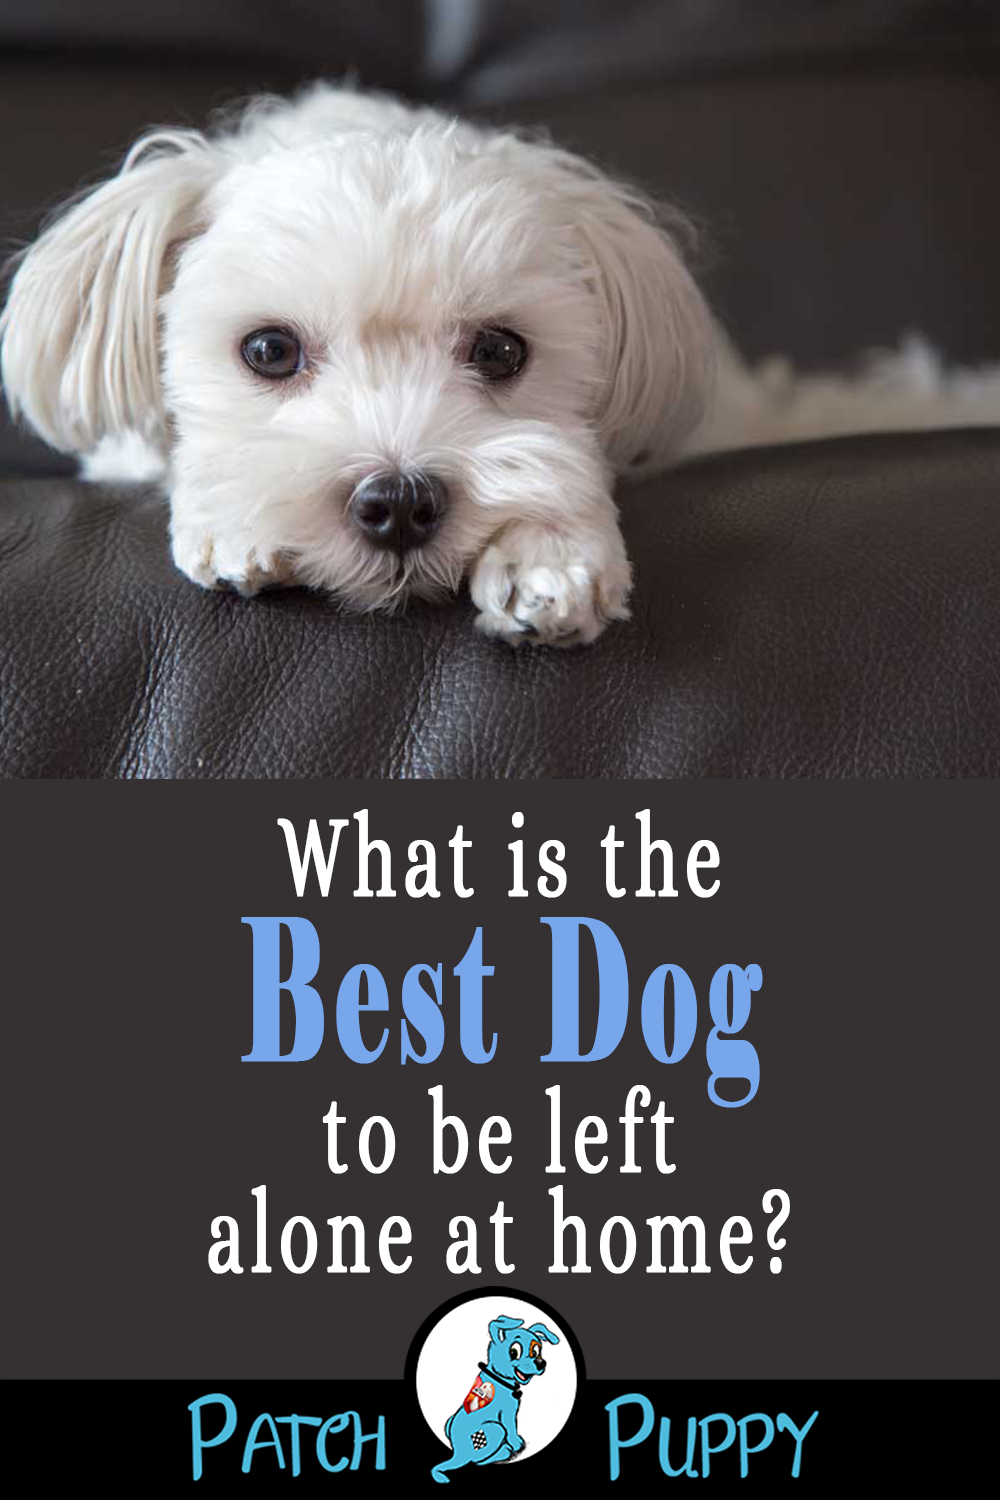 12 Dog Breeds That Can Stay Home Alone Dog breeds, Dogs